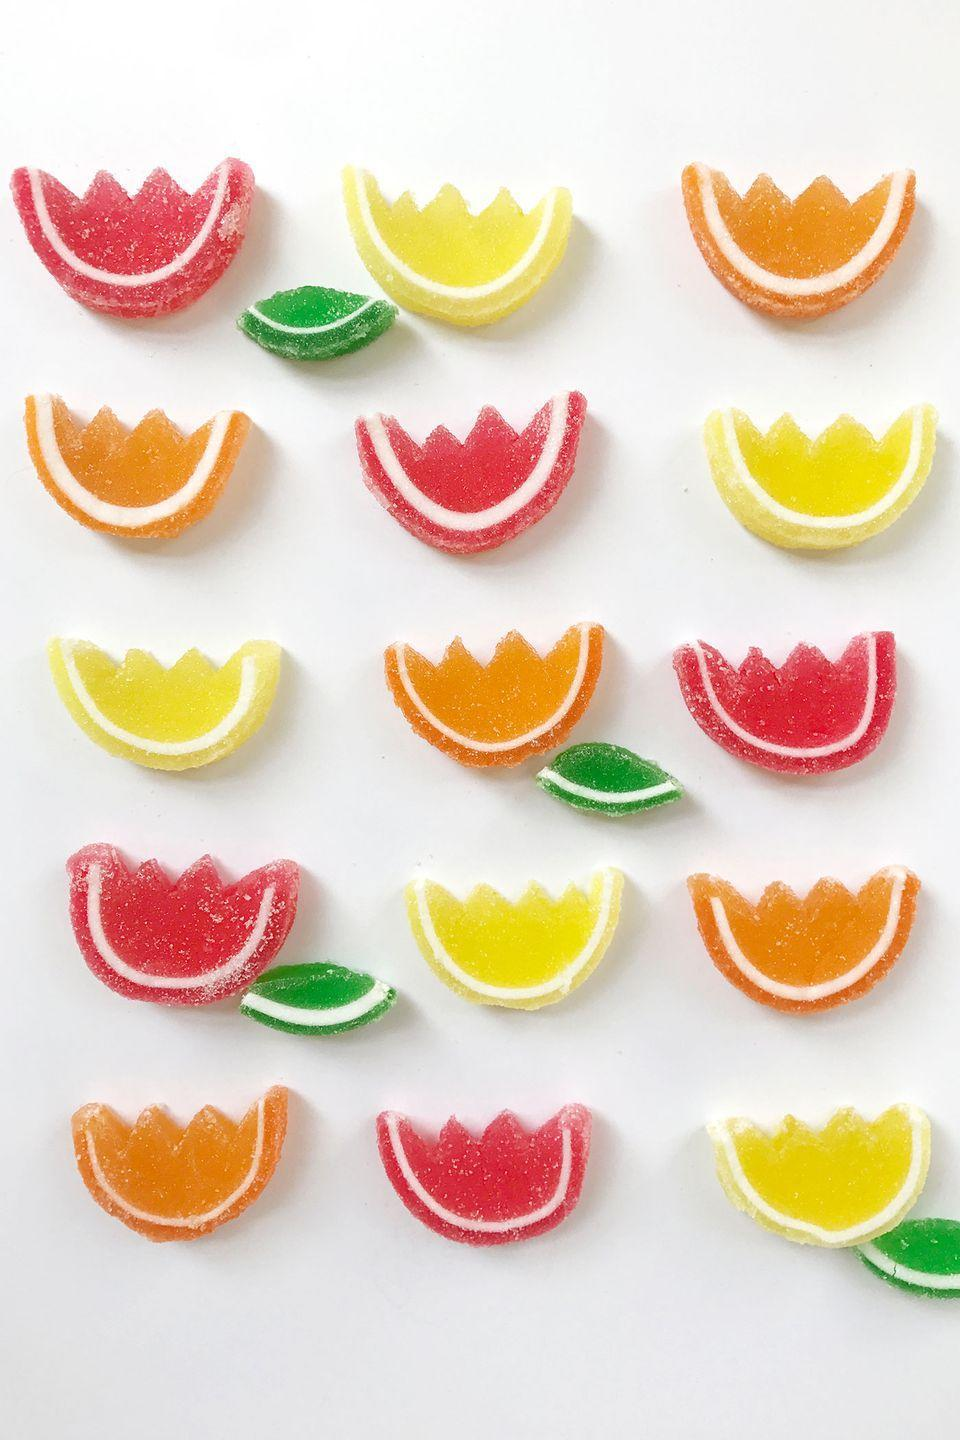 """<p>""""It doesn't take much to turn traditional fruit slices into spring table decor! Just cut a zigzag shape into the top of each one and voilà—instant flowers! They can be set out in small bowls on your table, set out on a tray, or placed on a cake as a sweet floral topper."""" <em>—<a href=""""http://www.darcymillerdesigns.com/"""" rel=""""nofollow noopener"""" target=""""_blank"""" data-ylk=""""slk:Darcy Miller"""" class=""""link rapid-noclick-resp"""">Darcy Miller</a>, Author and Entertaining Expert</em></p>"""